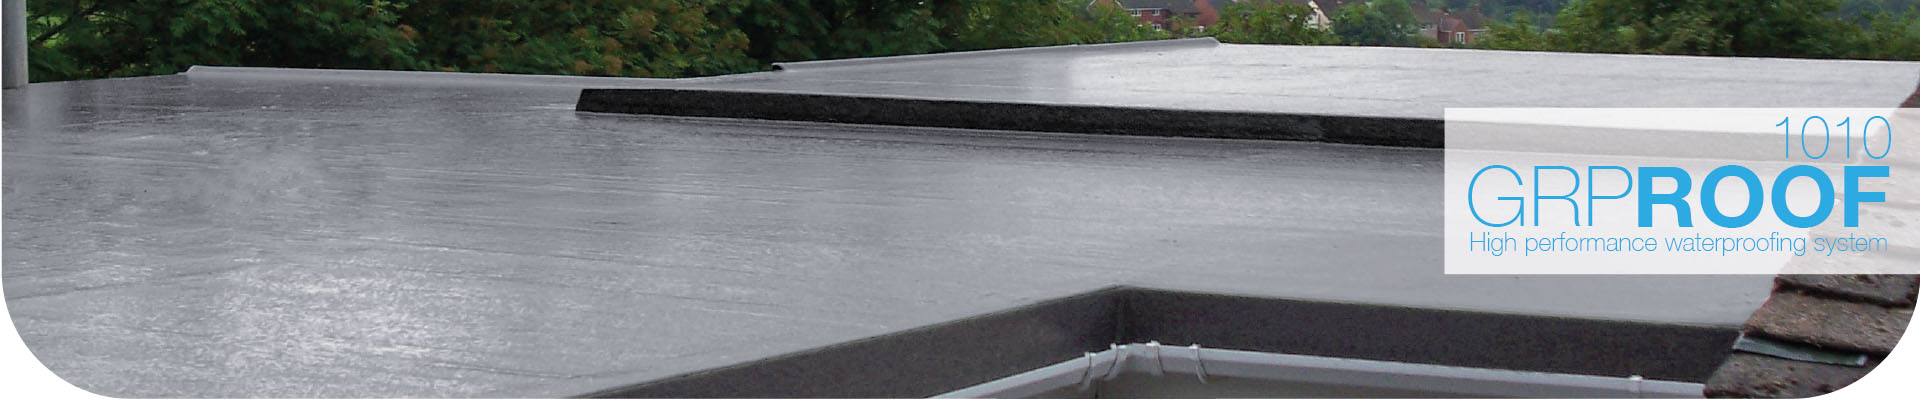 GRP Roof 1010 from Enterprise Building Products Limited